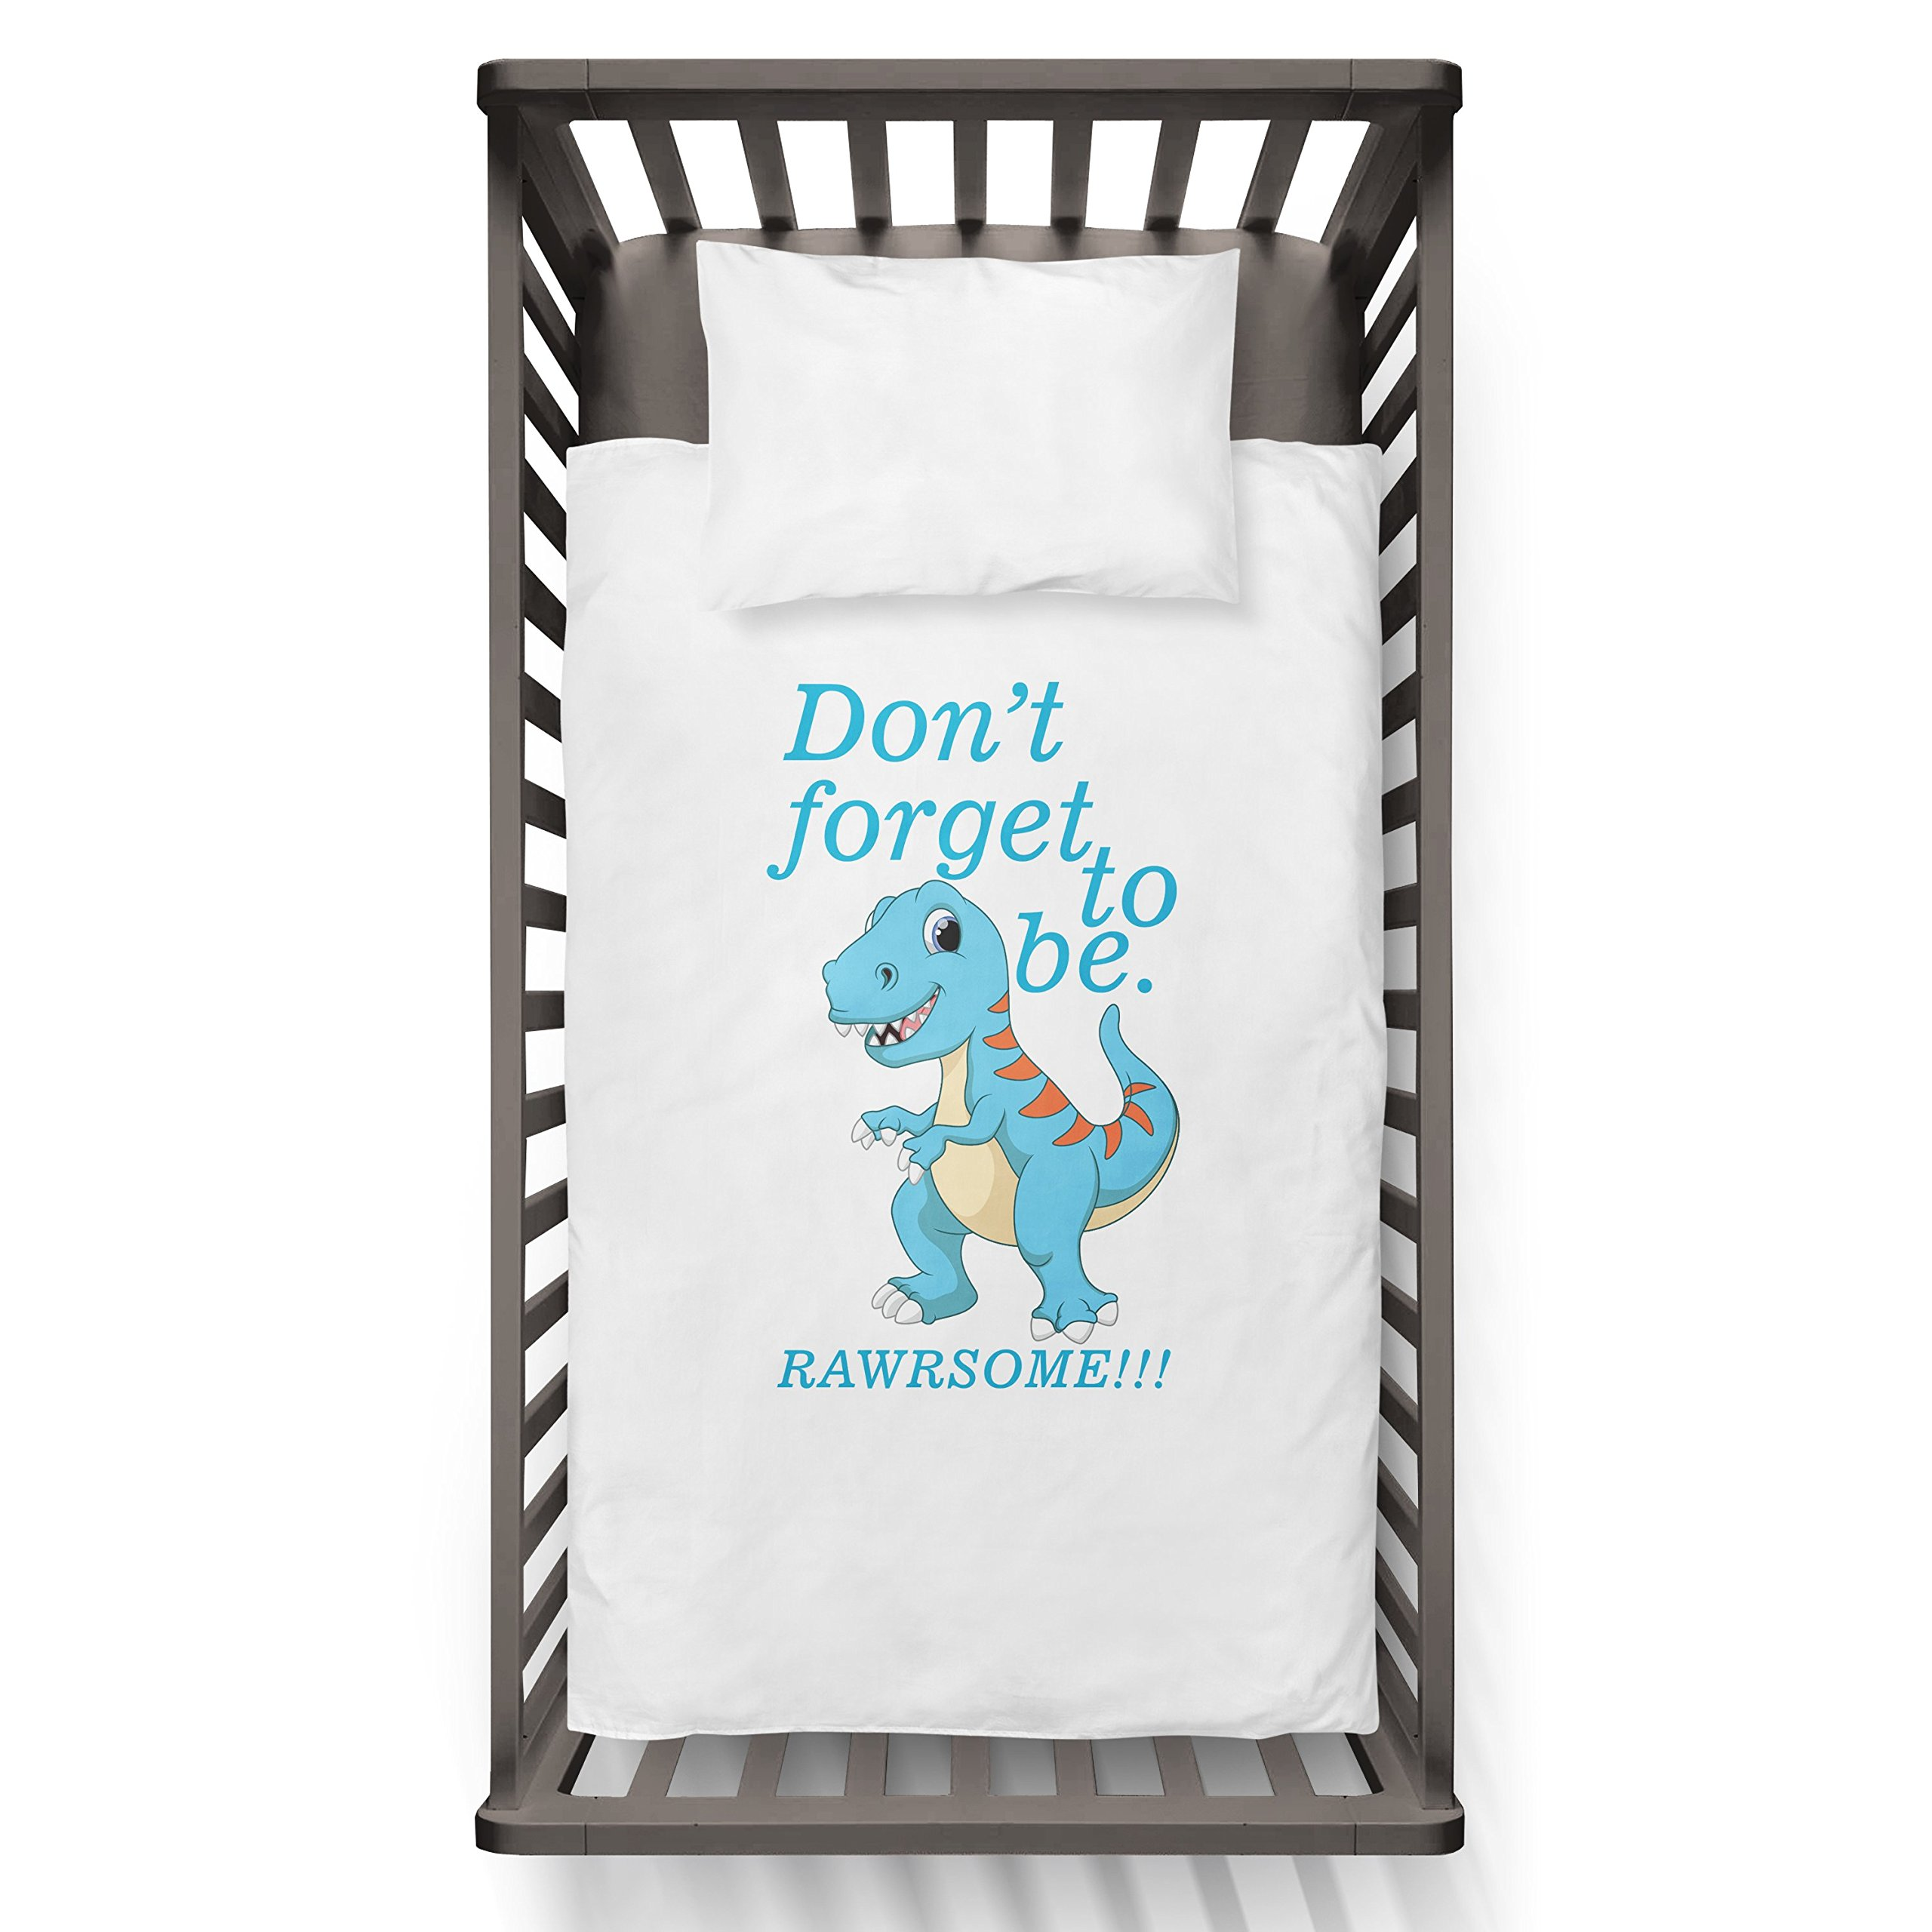 Don't Forget To Be Dino. Rawrsome!!! Funny Humor Hip Baby Duvet /Pillow set,Toddler Duvet,Oeko-Tex,Personalized duvet and pillow,Oraganic,gift